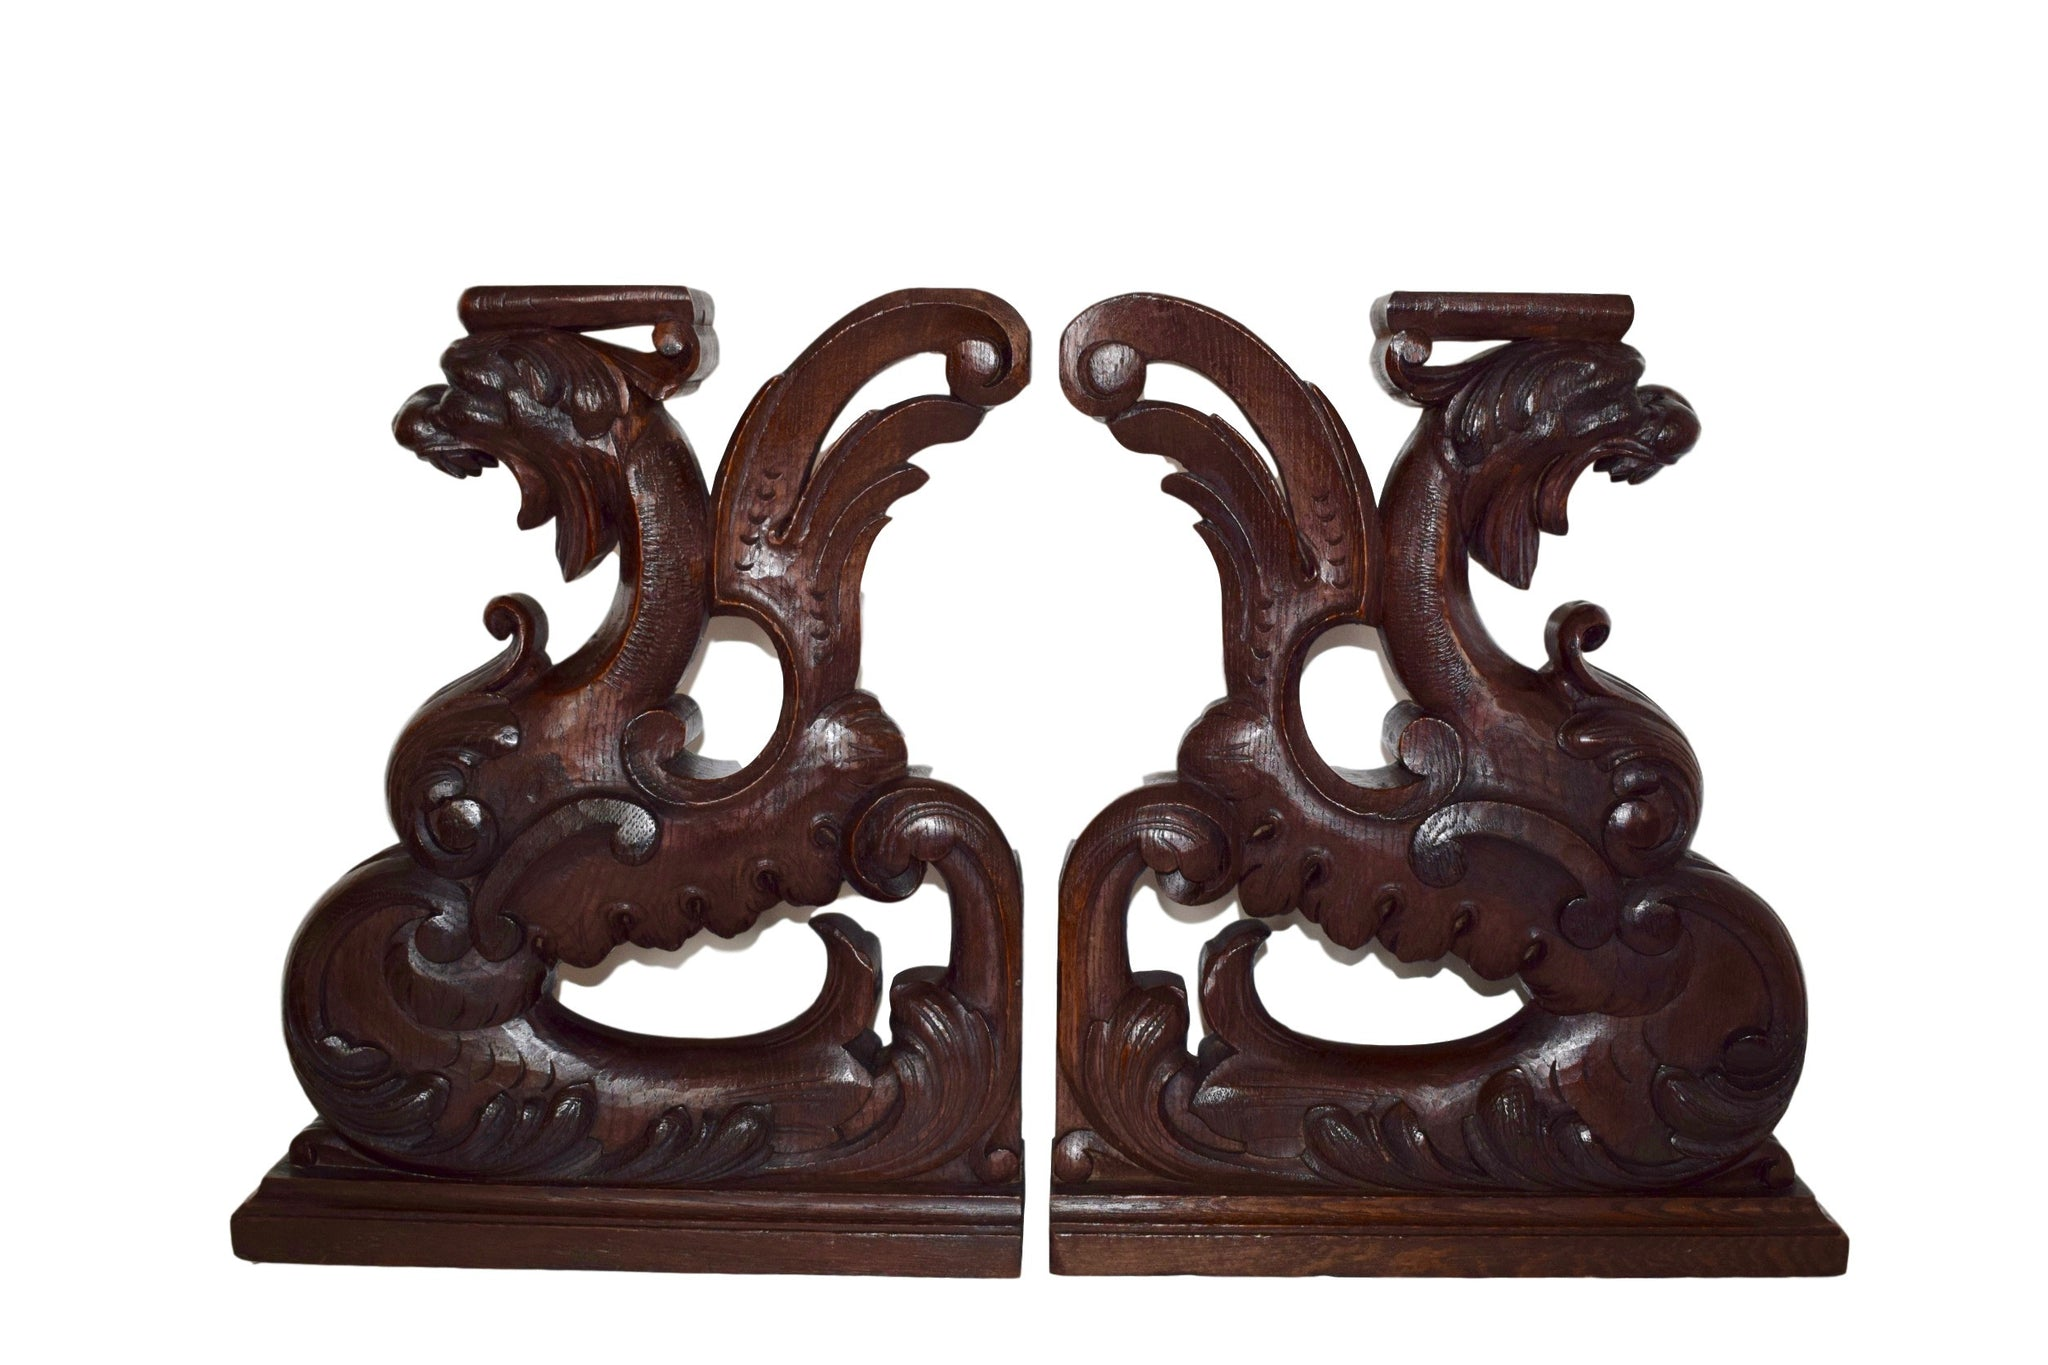 Pair of French Hand Carved Wood Griffins Cabinet Supports - Charmantiques